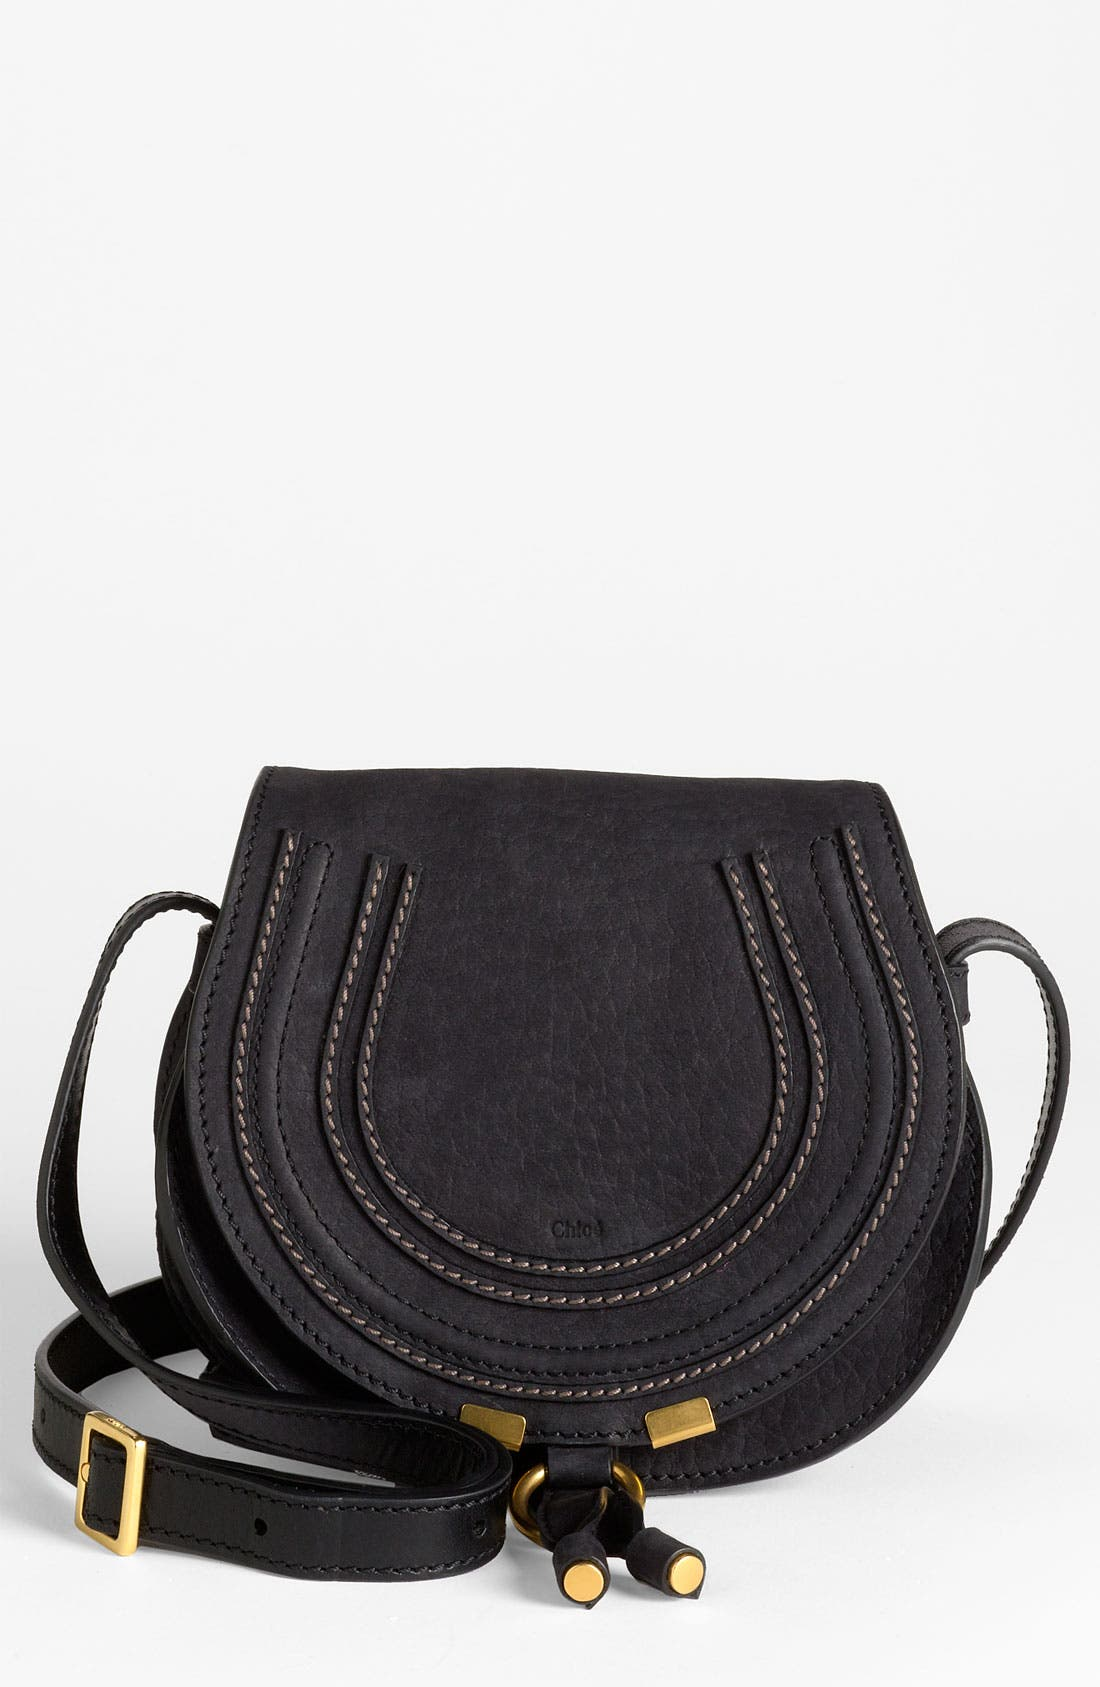 Alternate Image 1 Selected - Chloé 'Marcie - Small' Crossbody Bag